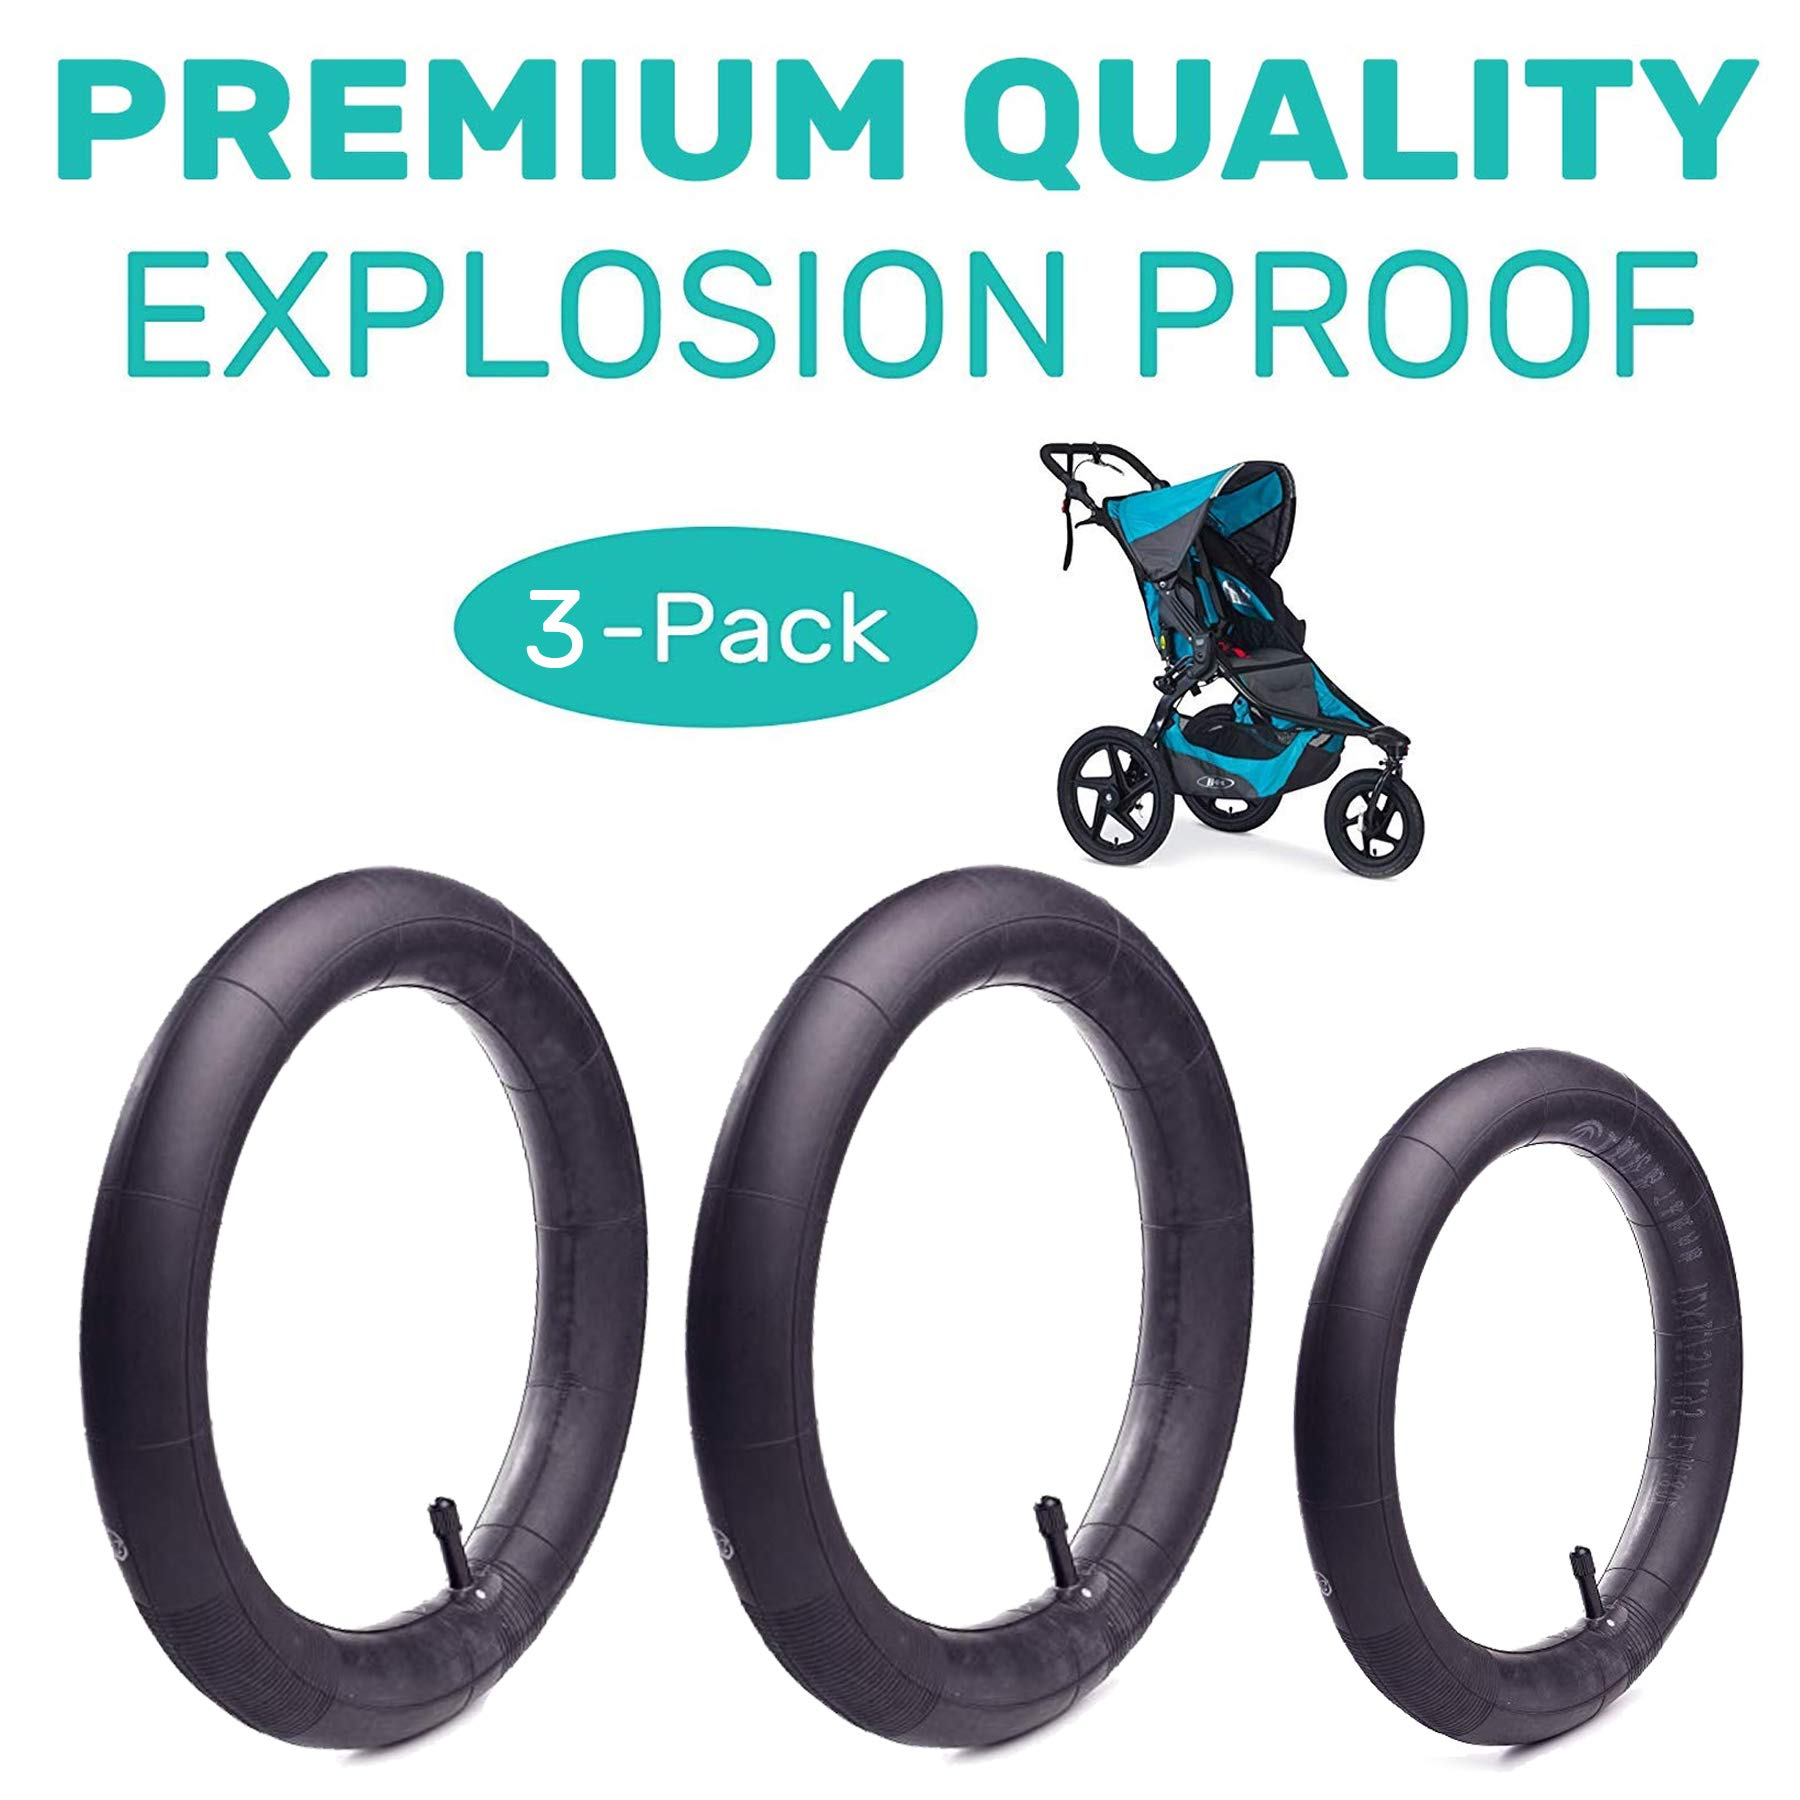 16'' Back and 12.5'' (2+1) Front Wheel Replacement Inner Tubes for BoB Stroller Tire Tube Revolution SE/Pro/Flex/SU/Ironman - Made from BPA/Latex Free Premium Quality Butyl Rubber